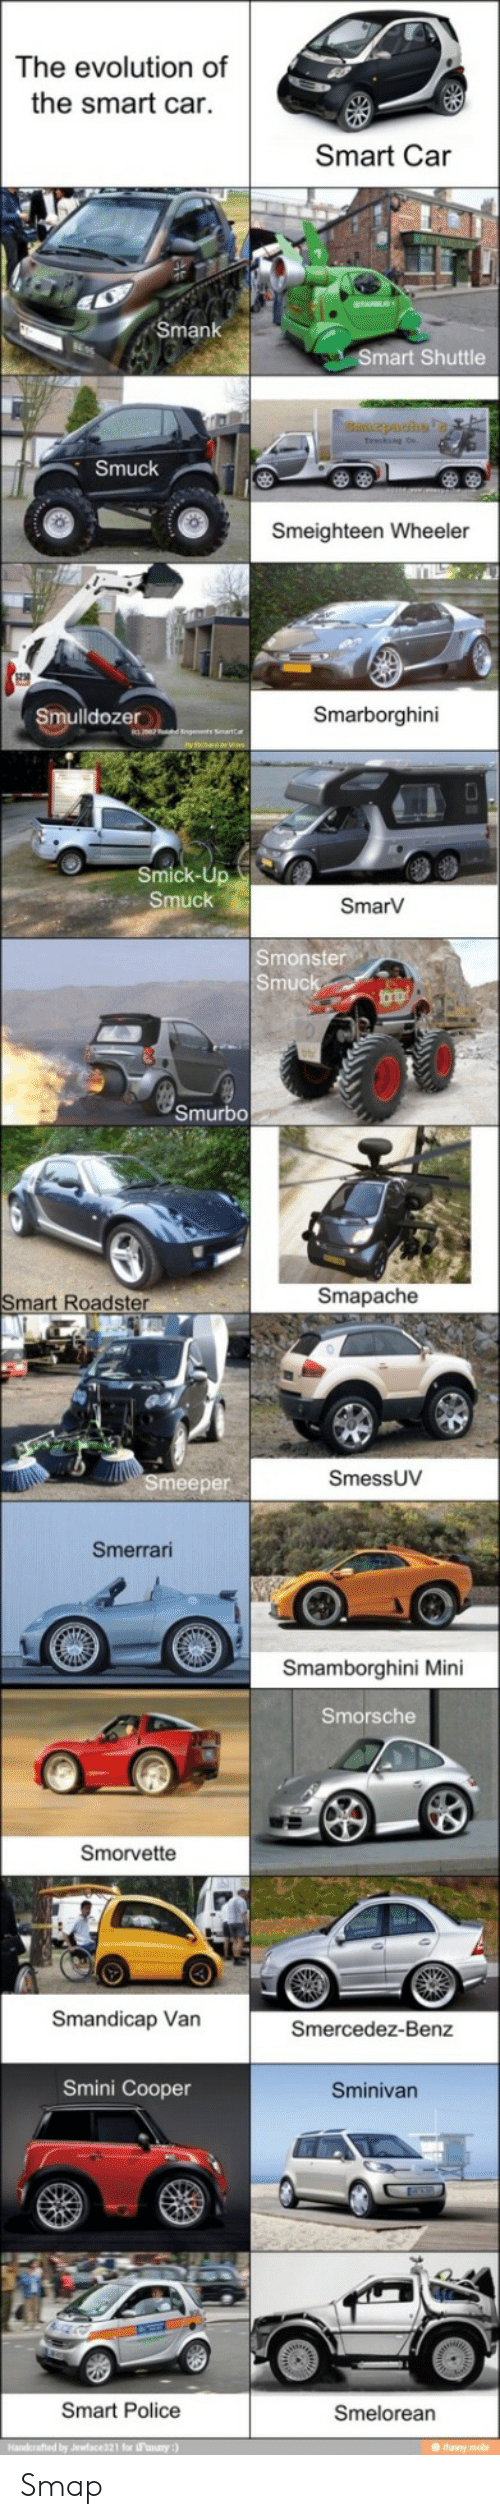 Police, Evolution, and Car: The evolution of  the smart car.  Smart Car  Smank  Smart Shuttle  puahs  Smuck  Smeighteen Wheeler  Smarborghini  Smulldozer  Smick-Up  Smuck  SmarV  Smonster  Smuck  Smurbo  Smapache  Smart Roadster  SmessUV  Smeeper  Smerrari  Smamborghini Mini  Smorsche  Smorvette  Smandicap Van  Smercedez-Benz  Smini Cooper  Sminivan  Smart Police  Smelorean  Handerafted by Jewface321 for Fanany:)  IS Smap